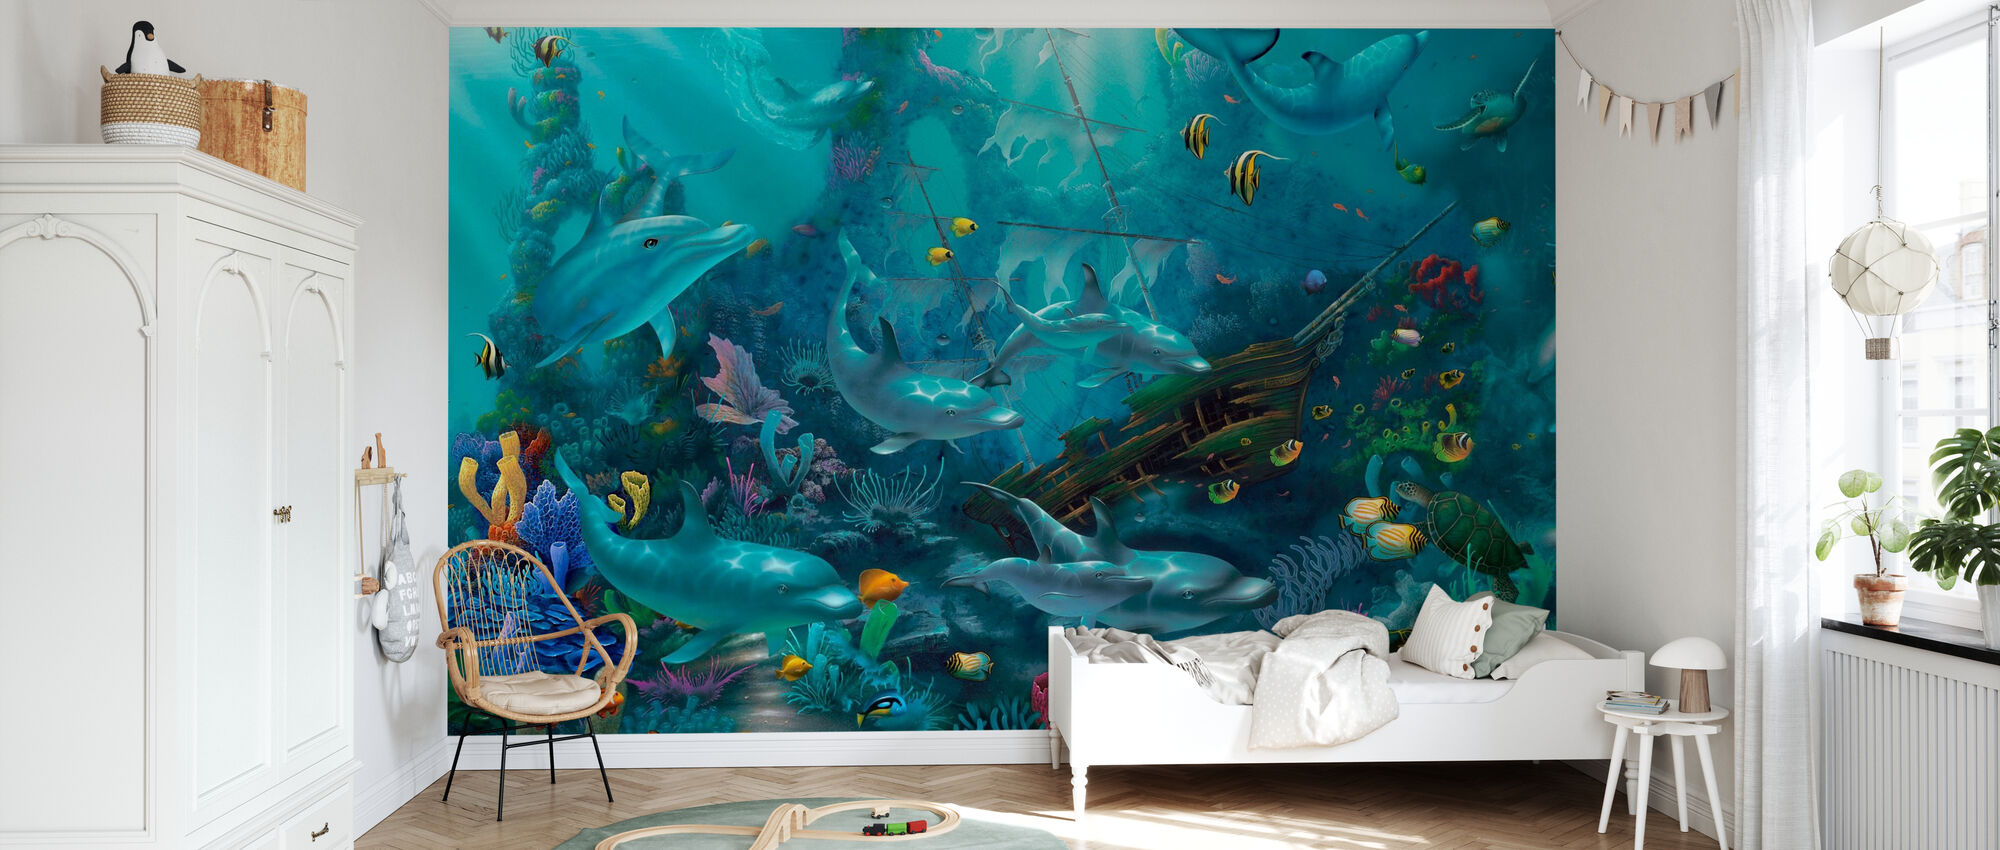 Dolphin Treasures - Wallpaper - Kids Room